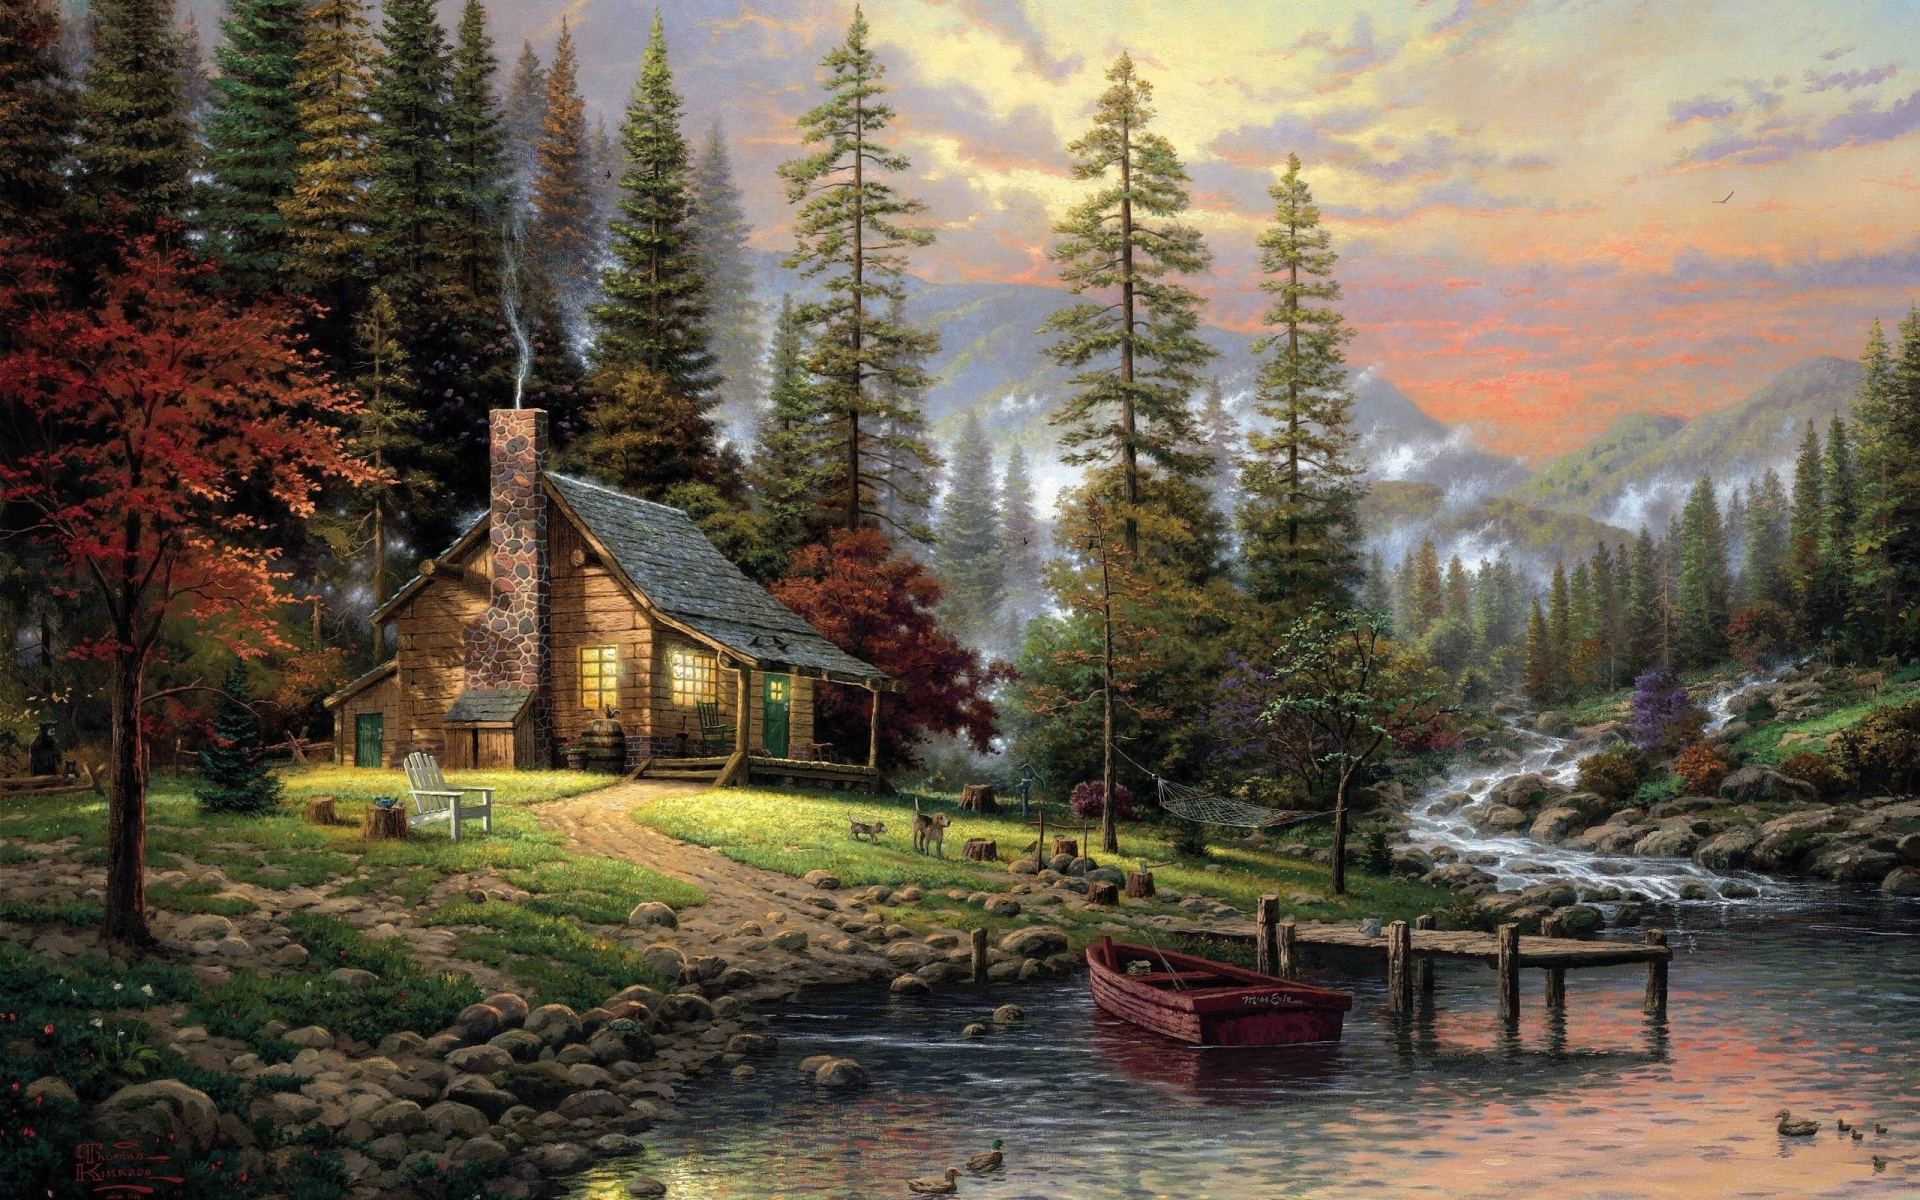 Download Full HD Wallpapers absolutely free for your pc desktop, laptop and mobile devices. Mountain Cabin Wallpaper